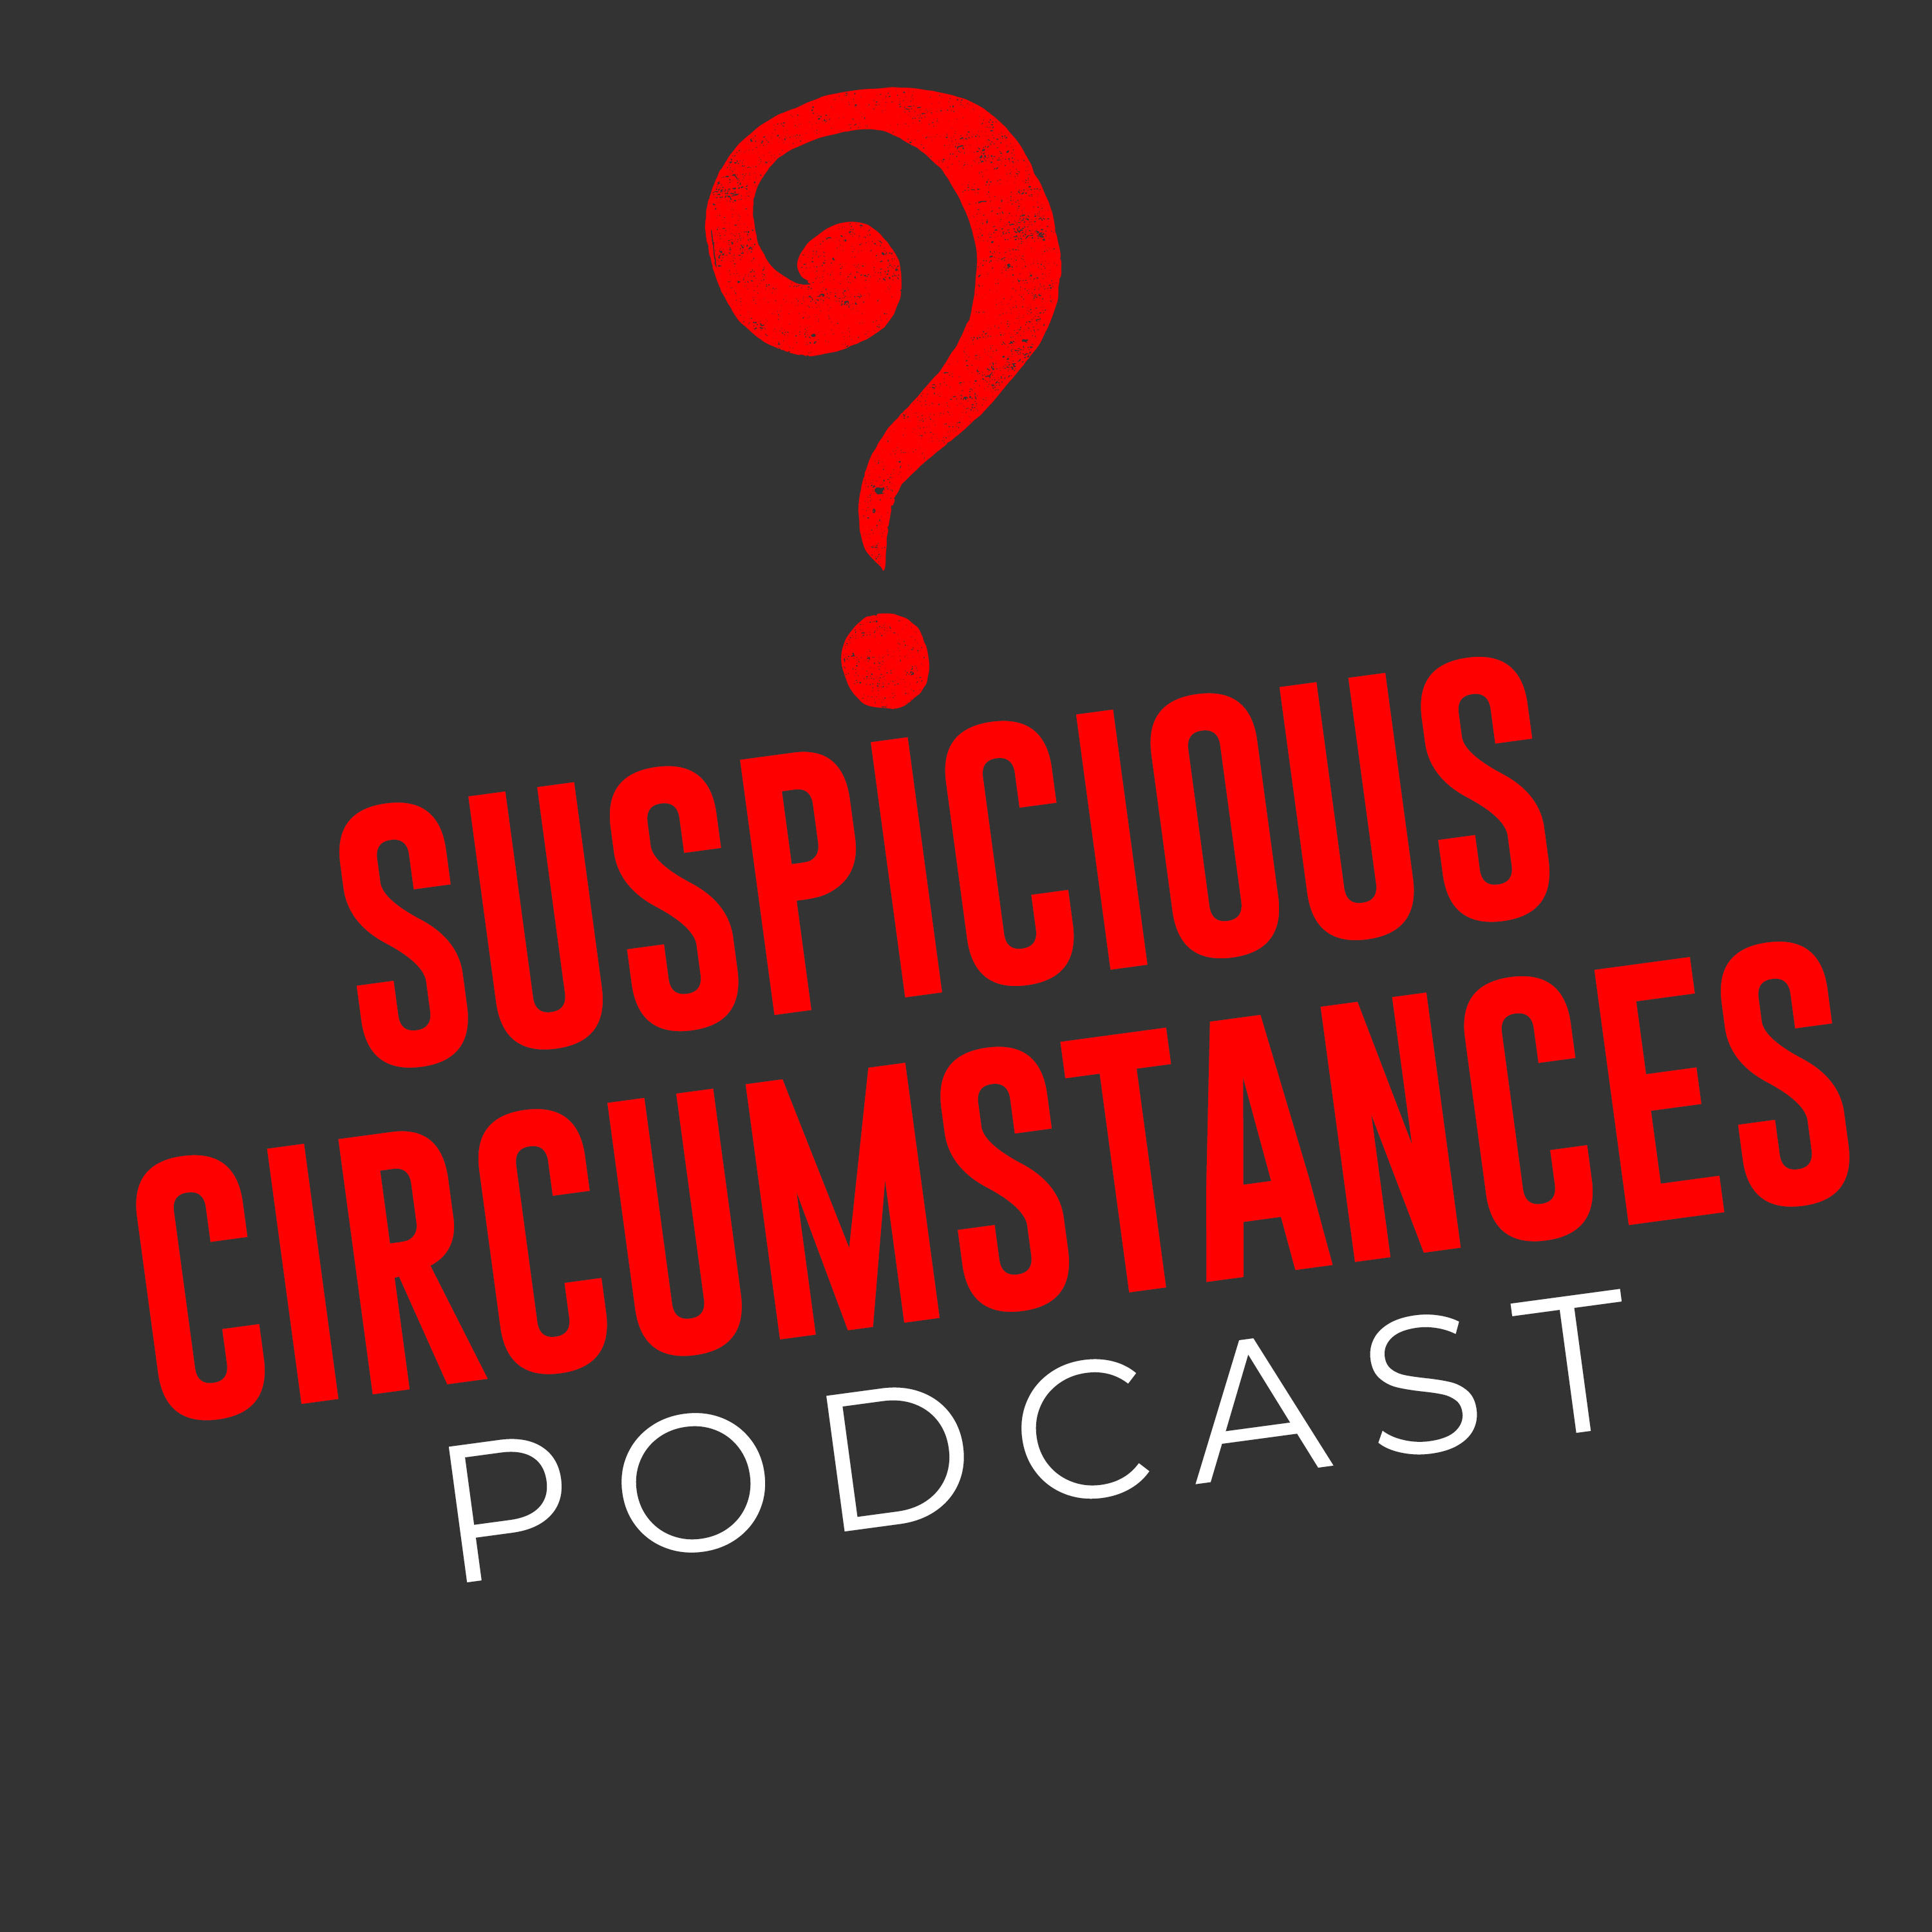 Artwork for Suspicious Circumstances Podcast: Murder, True Crime, Cults, Conspiracies, Unsolved